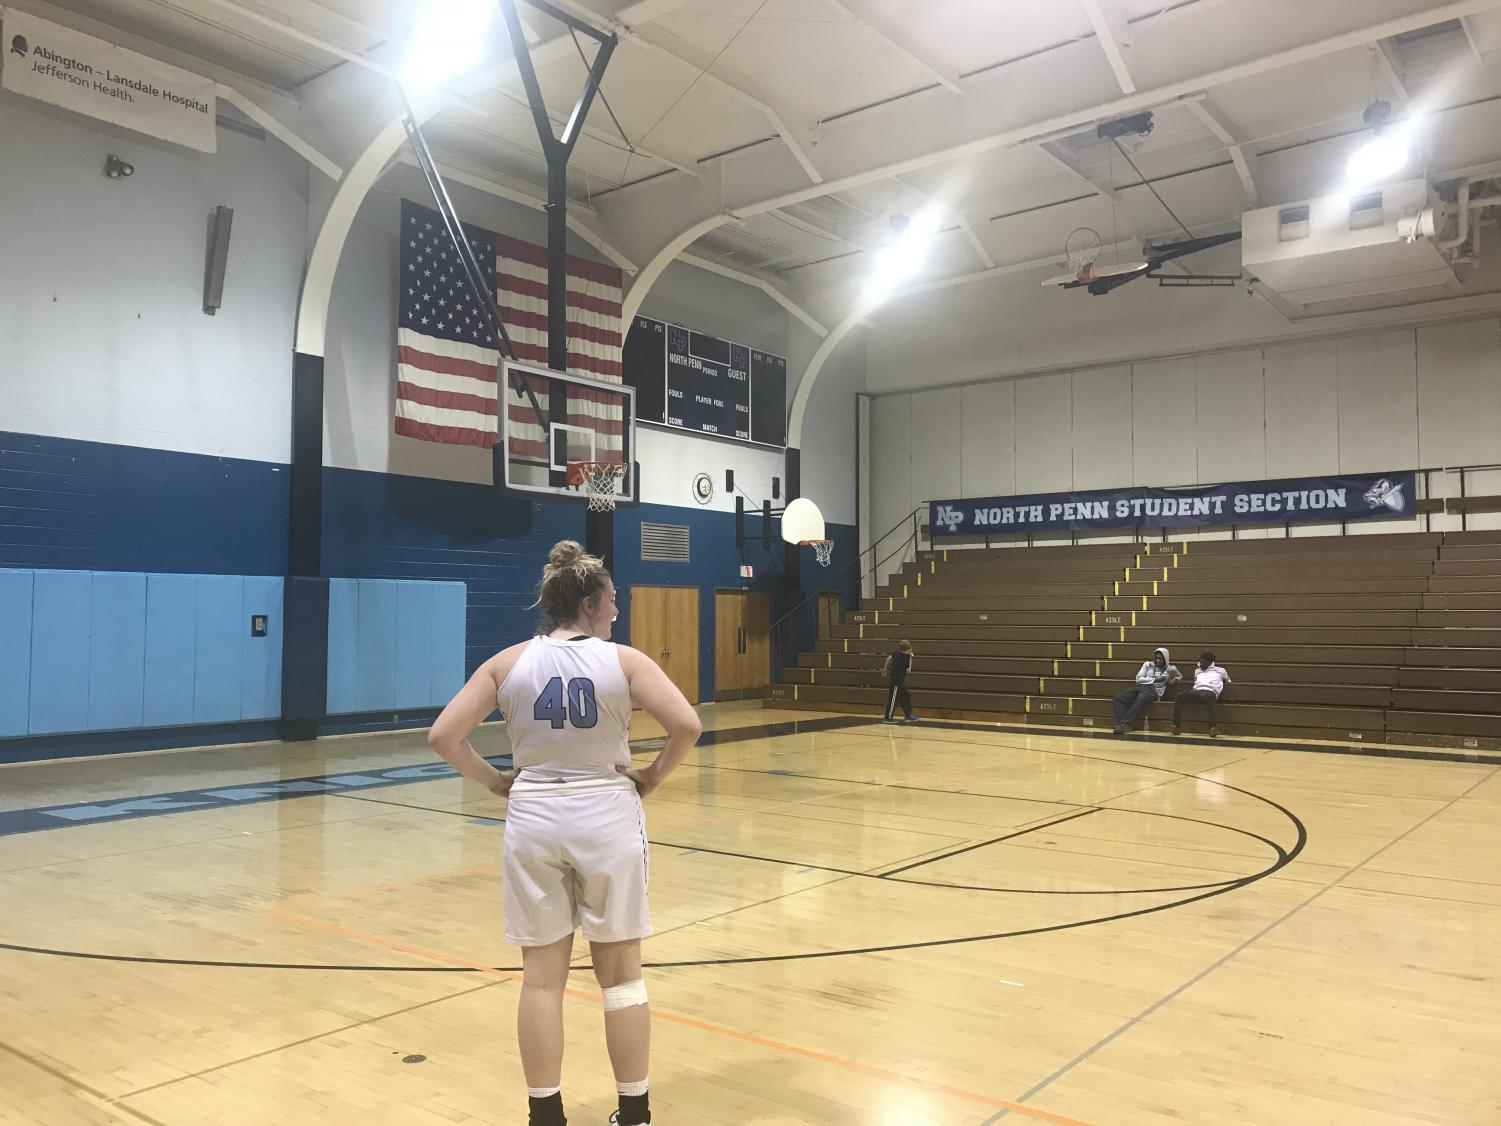 BASKETBALL- Senior Jess McKenzie reflects on the court after her team's twelfth loss in a row.